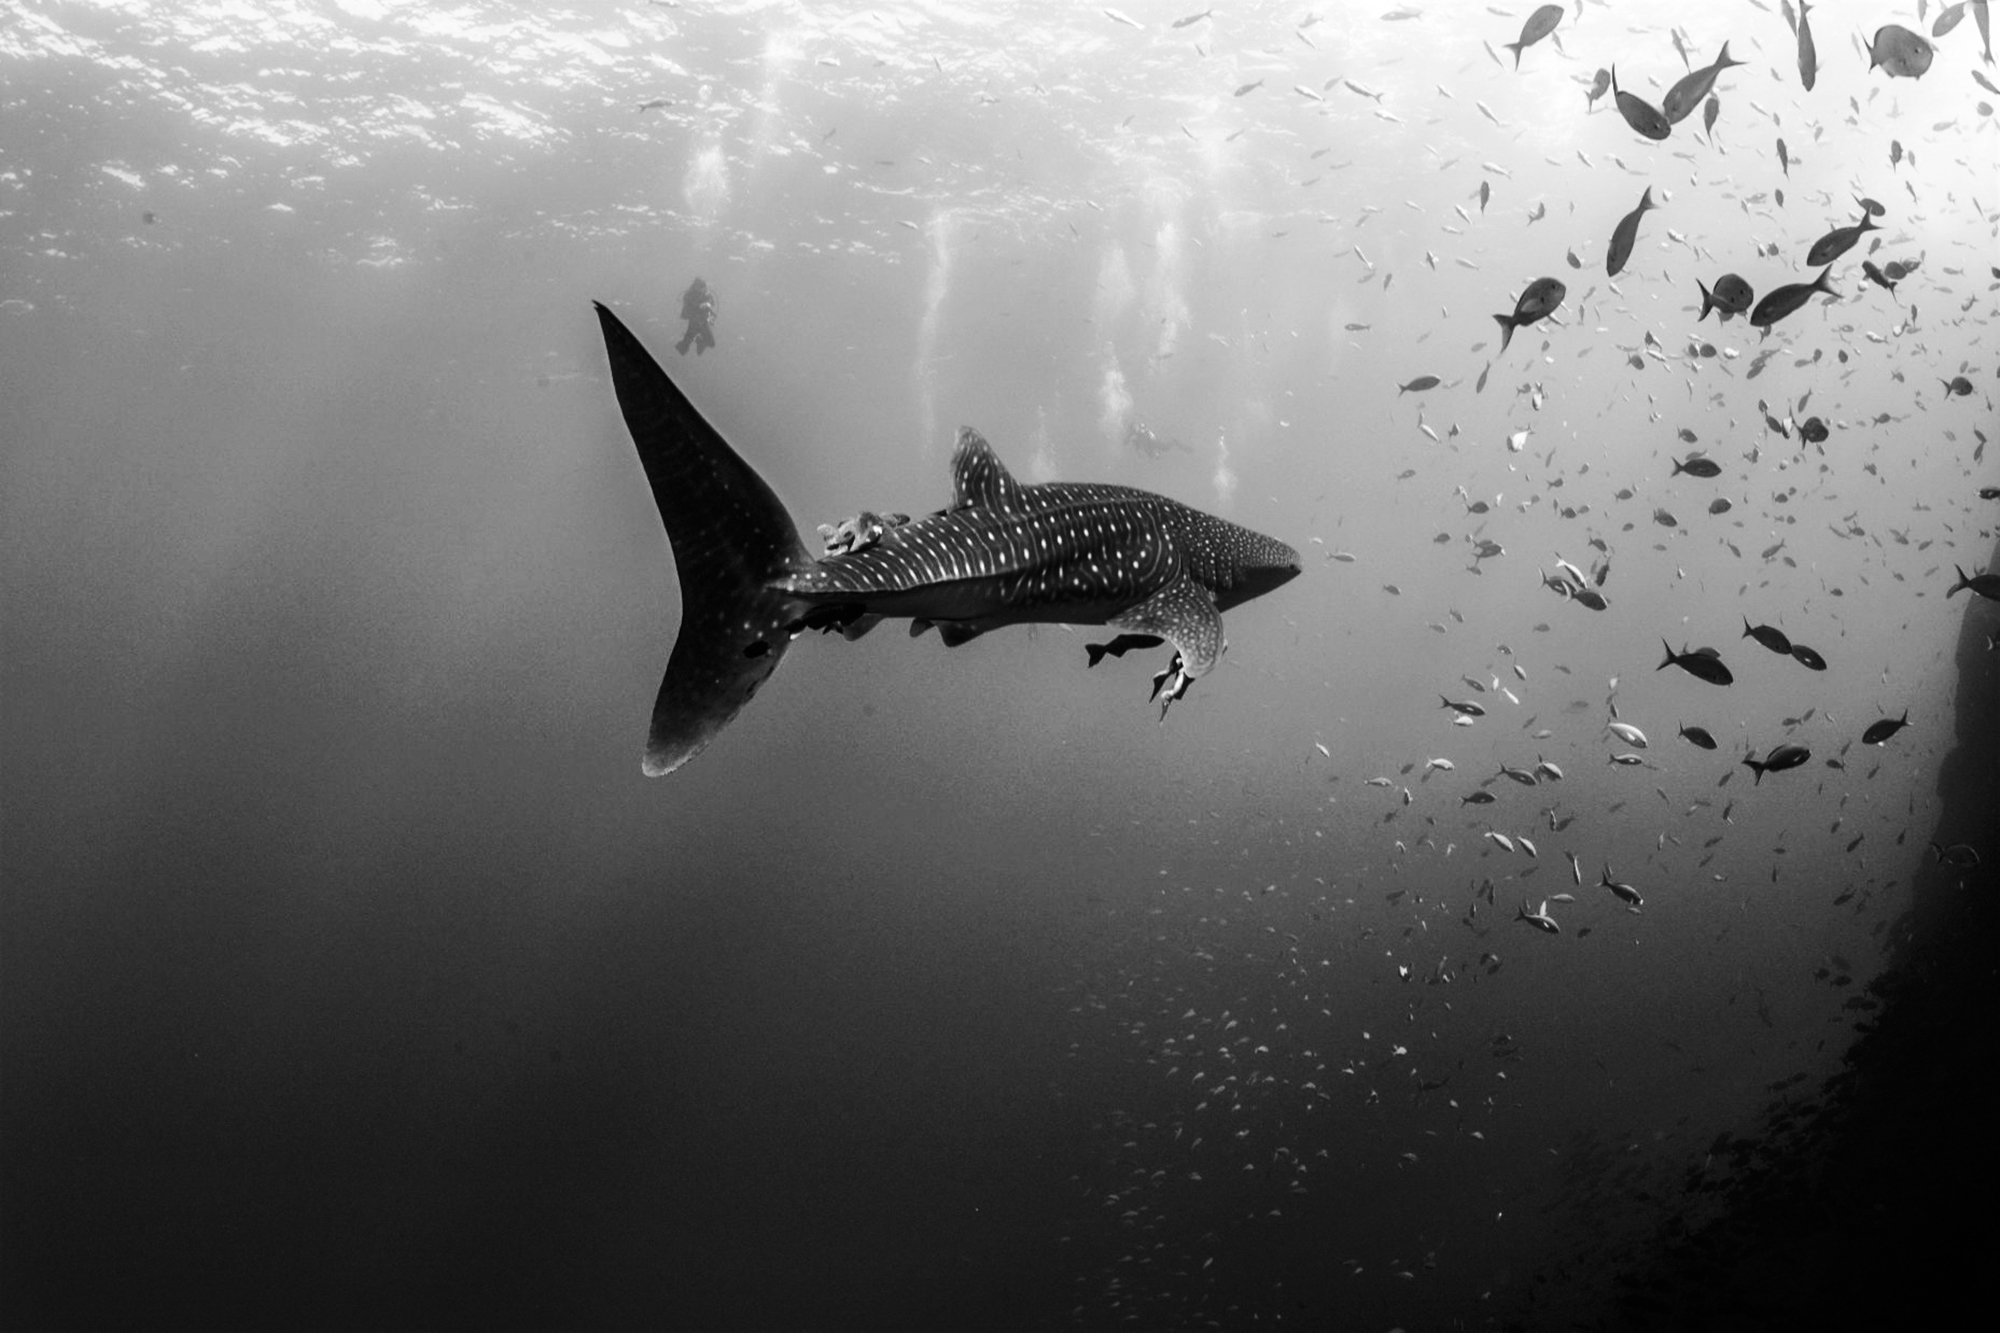 A beautiful whale shark spotted in Socorro. Photo by Kim Nilsson Davidsson